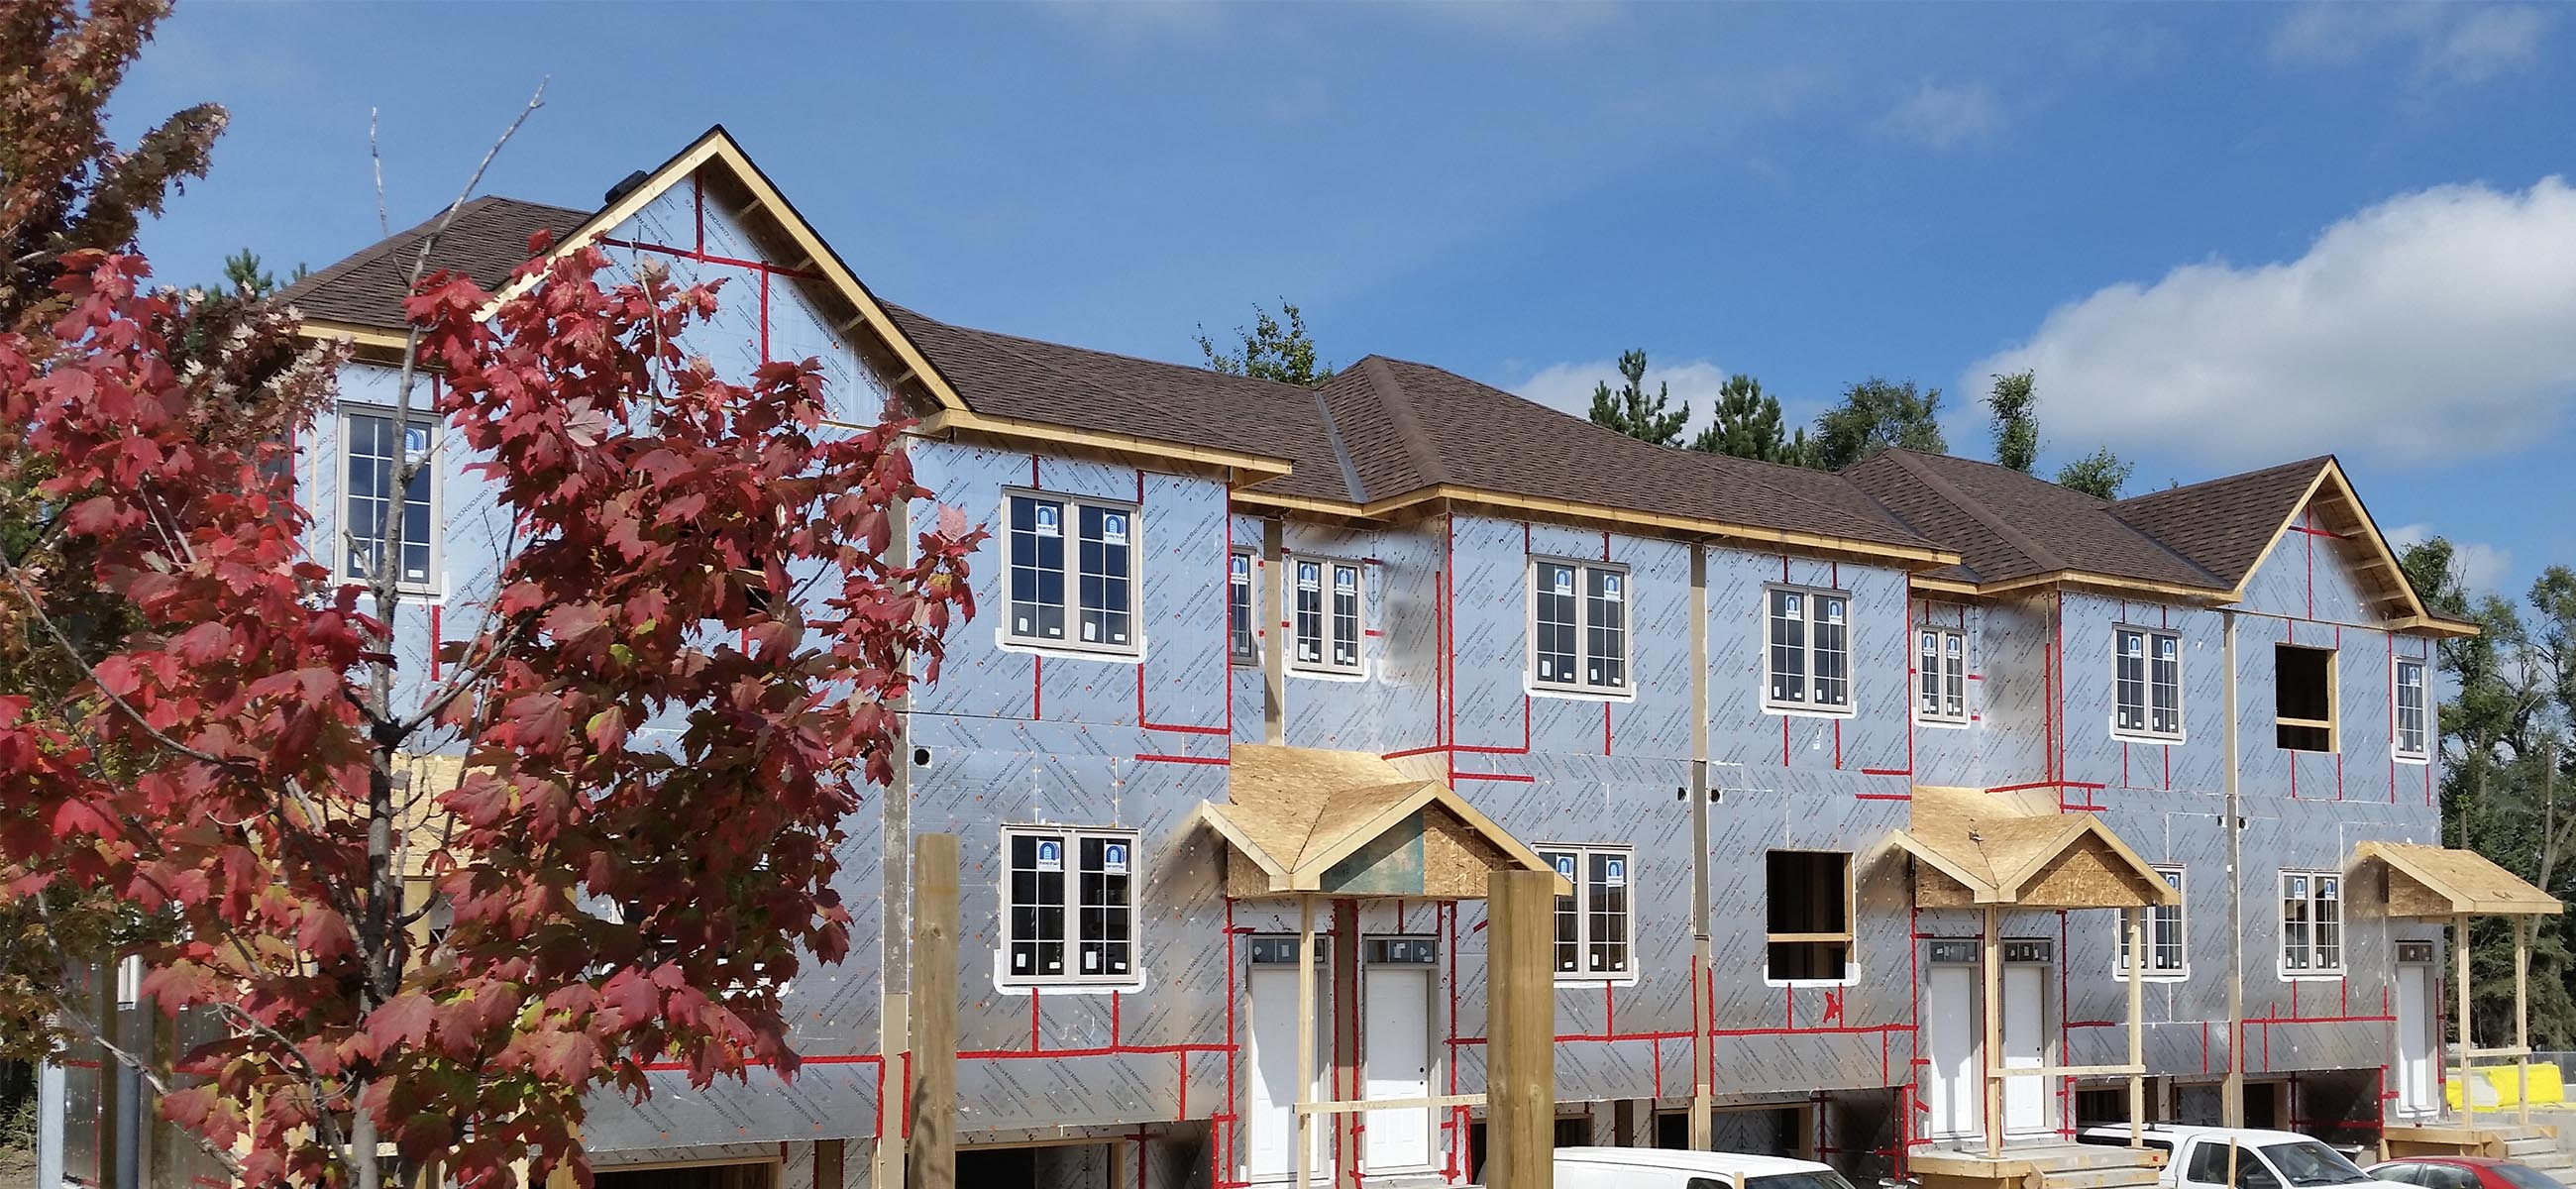 Providing innovative insulation solutions to help build energy efficient and comfortable homes and buildings